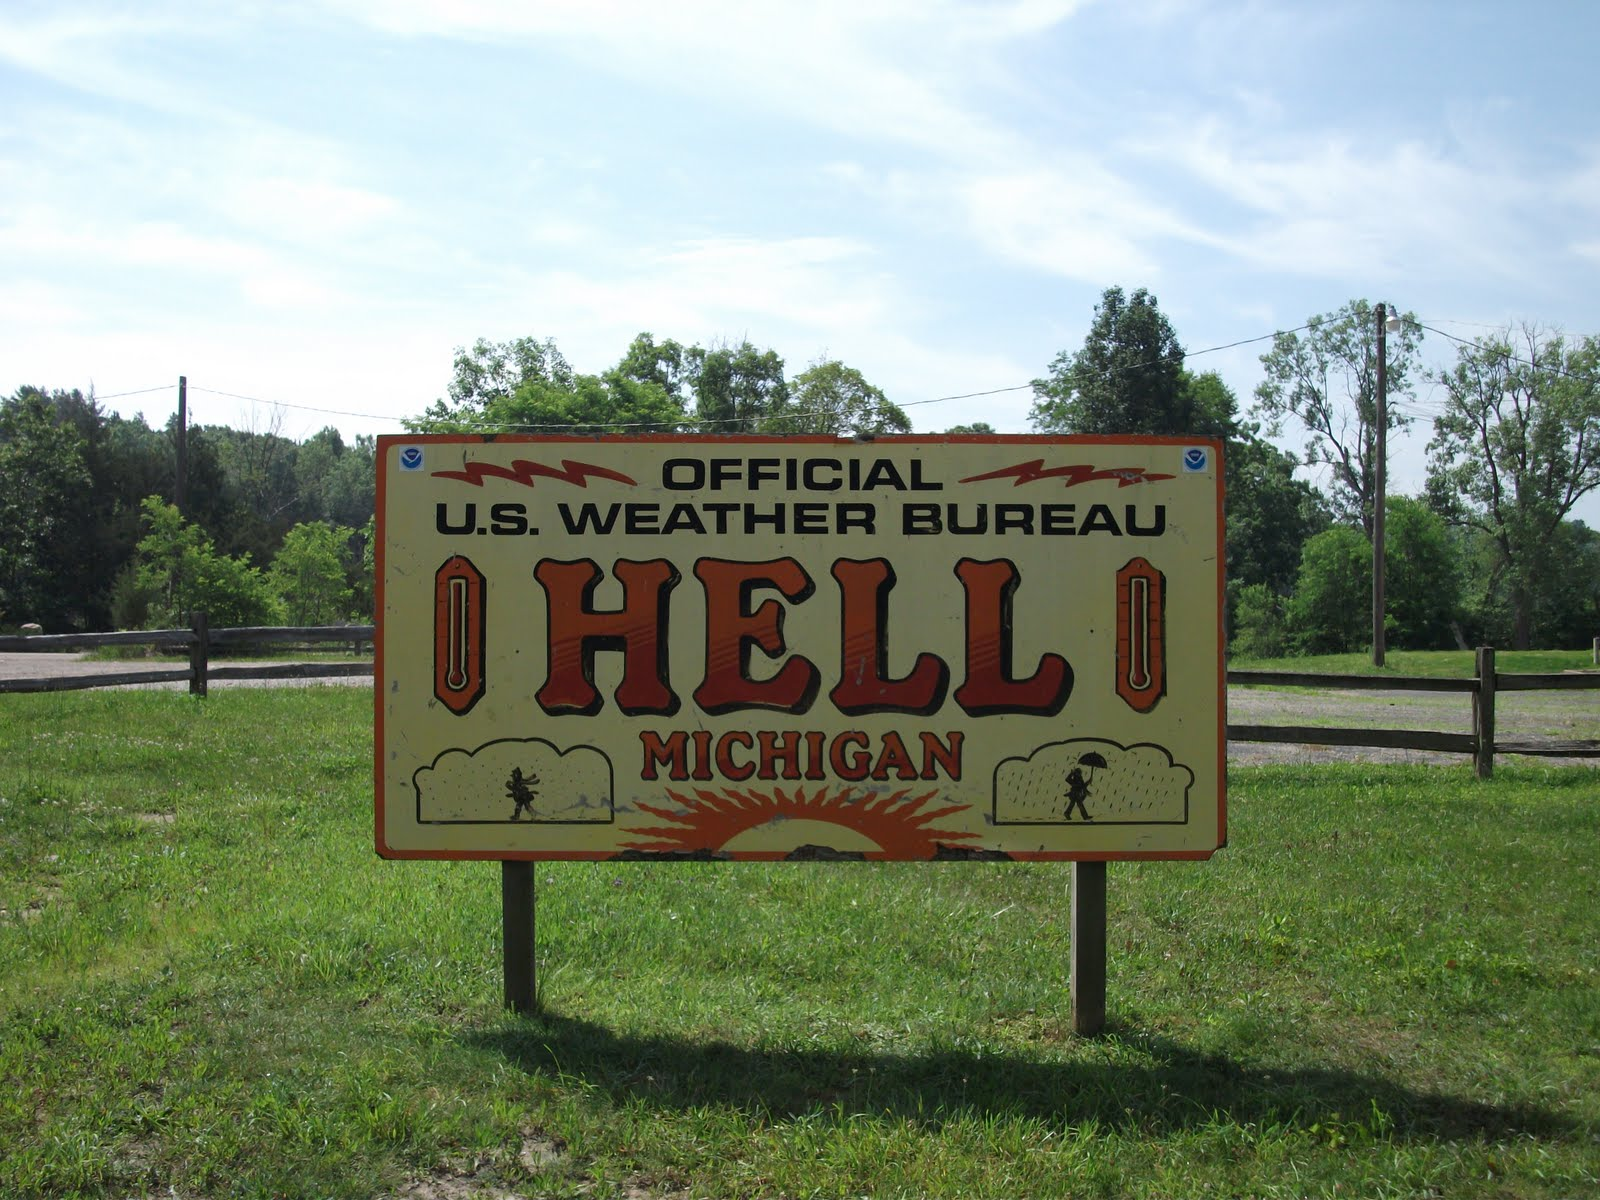 HELL Funny Town Names From Around the World